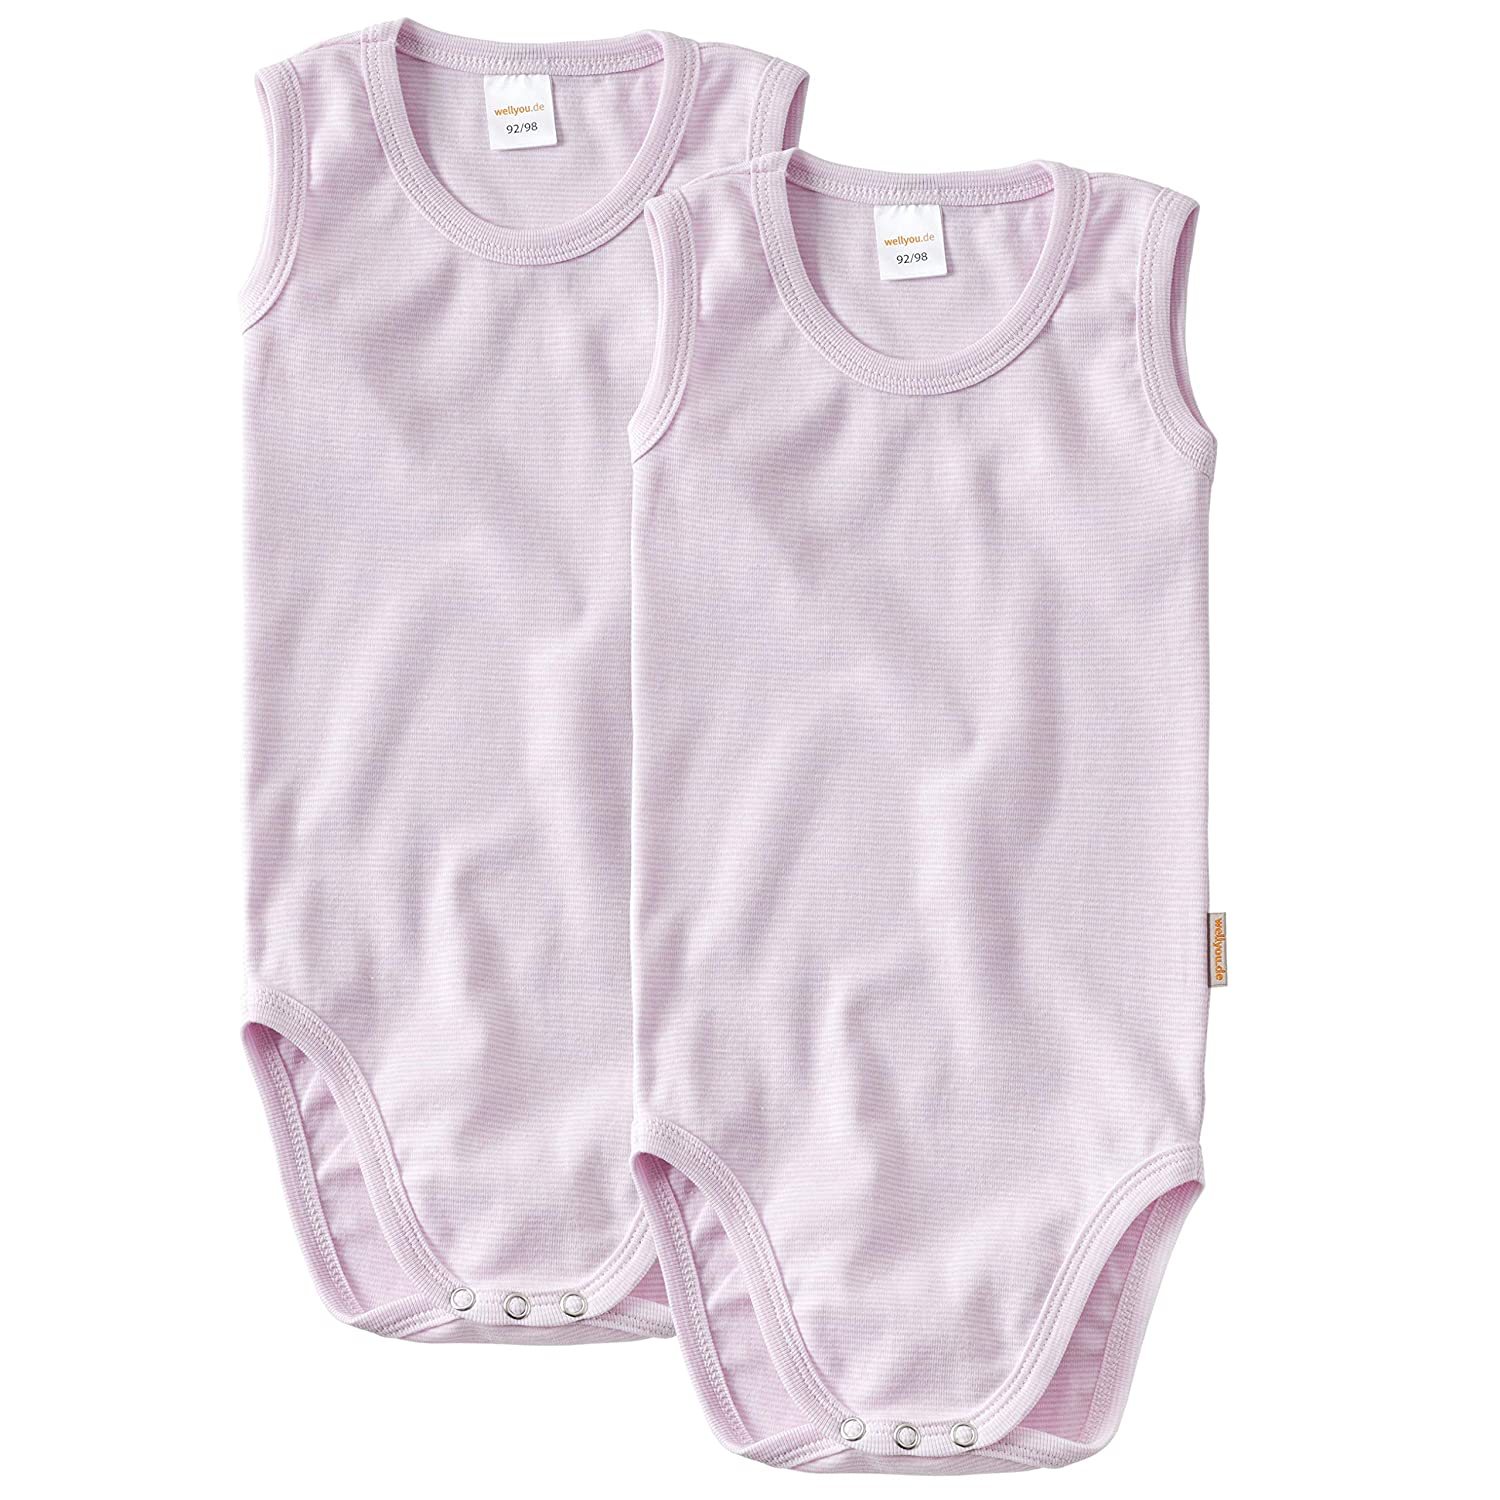 wellyou Baby and Kids Double Pack Babybody Without Arm Girls 100/% Cotton Body Set of 2 in Pink and White Size 128-134